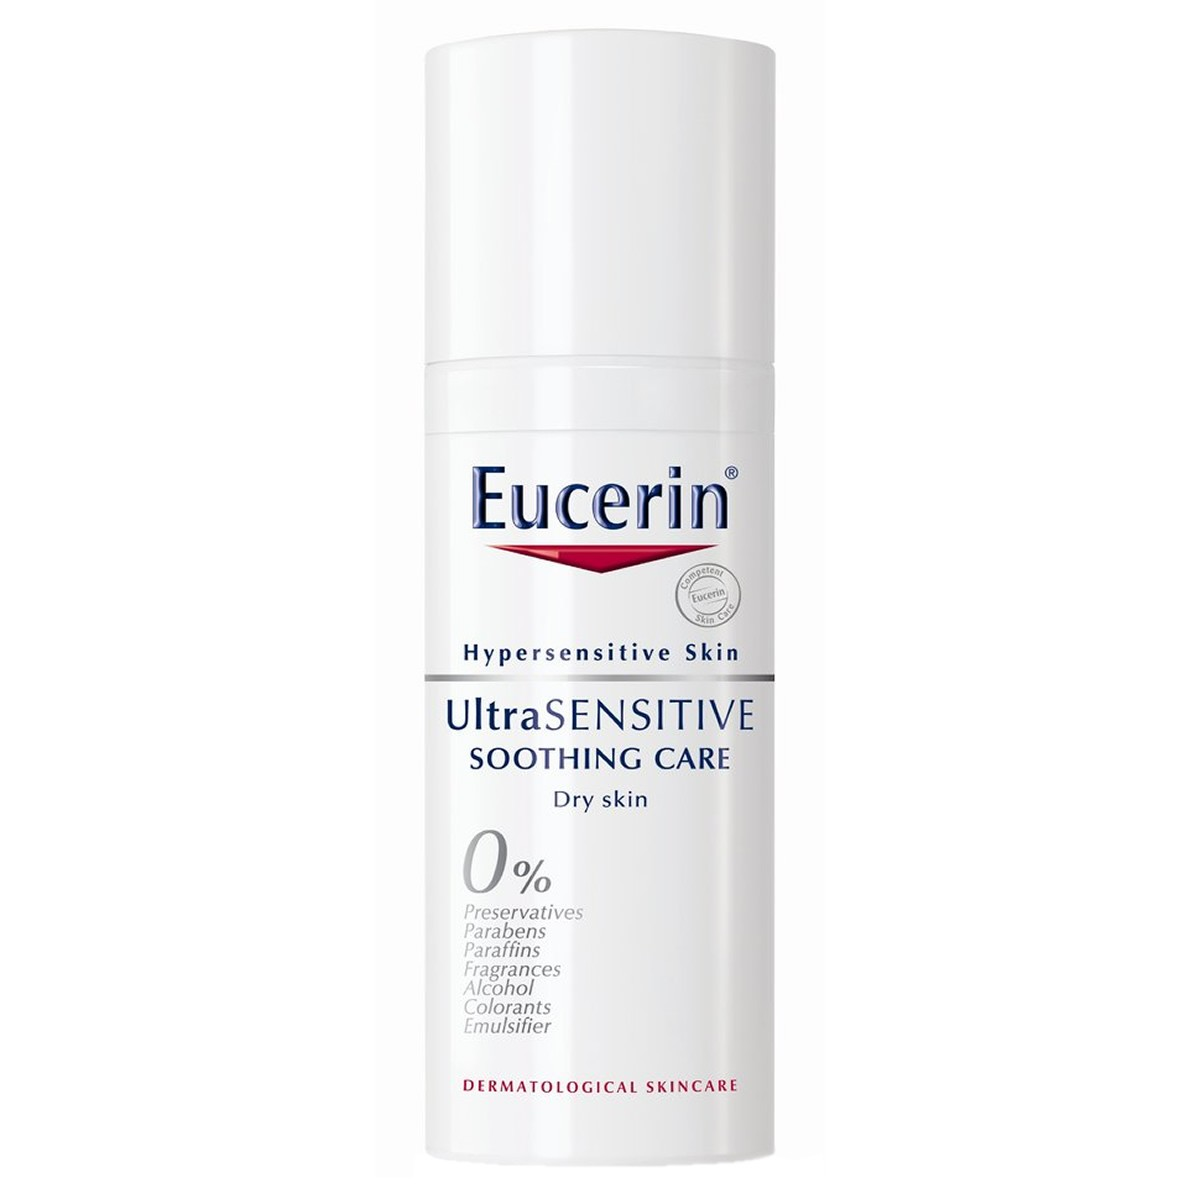 Eucerin Ultra Sensitive Soothing Care Dry Skin